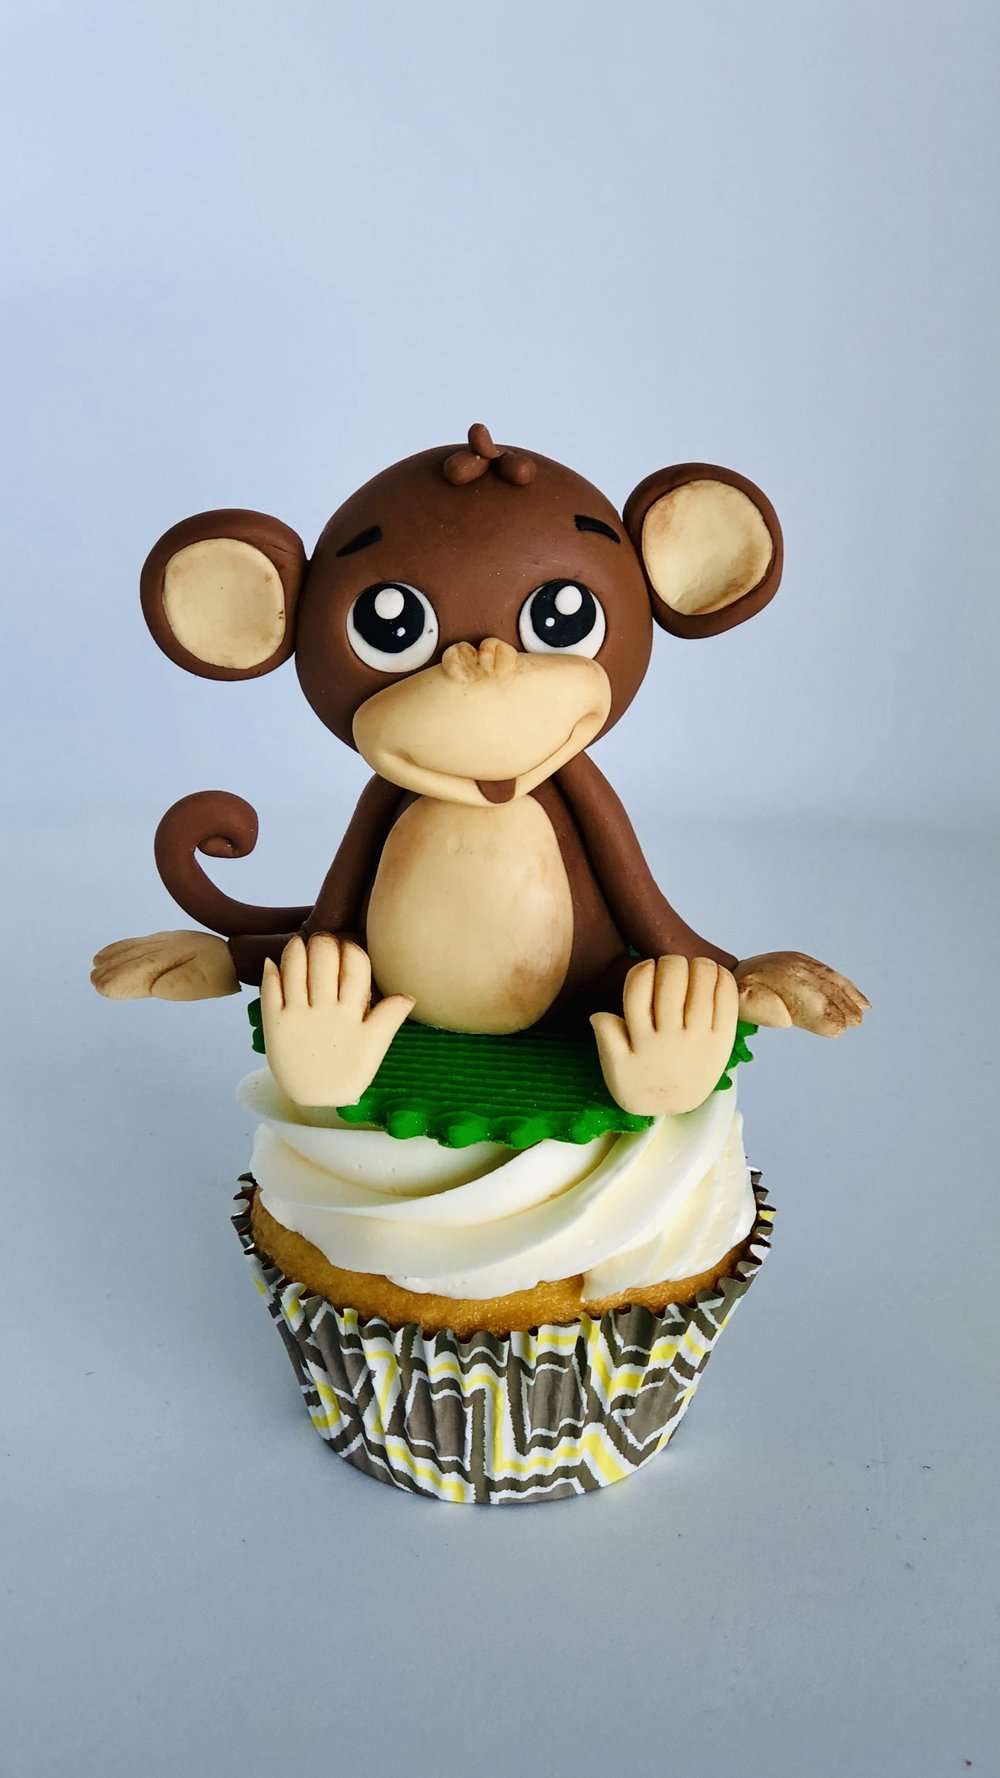 Jungle Monkey - COME GET SILLY WITH US AS WE GO BANANAS WITH THESE APES. RECOMMENDED AGE GROUP 8 AND UP.